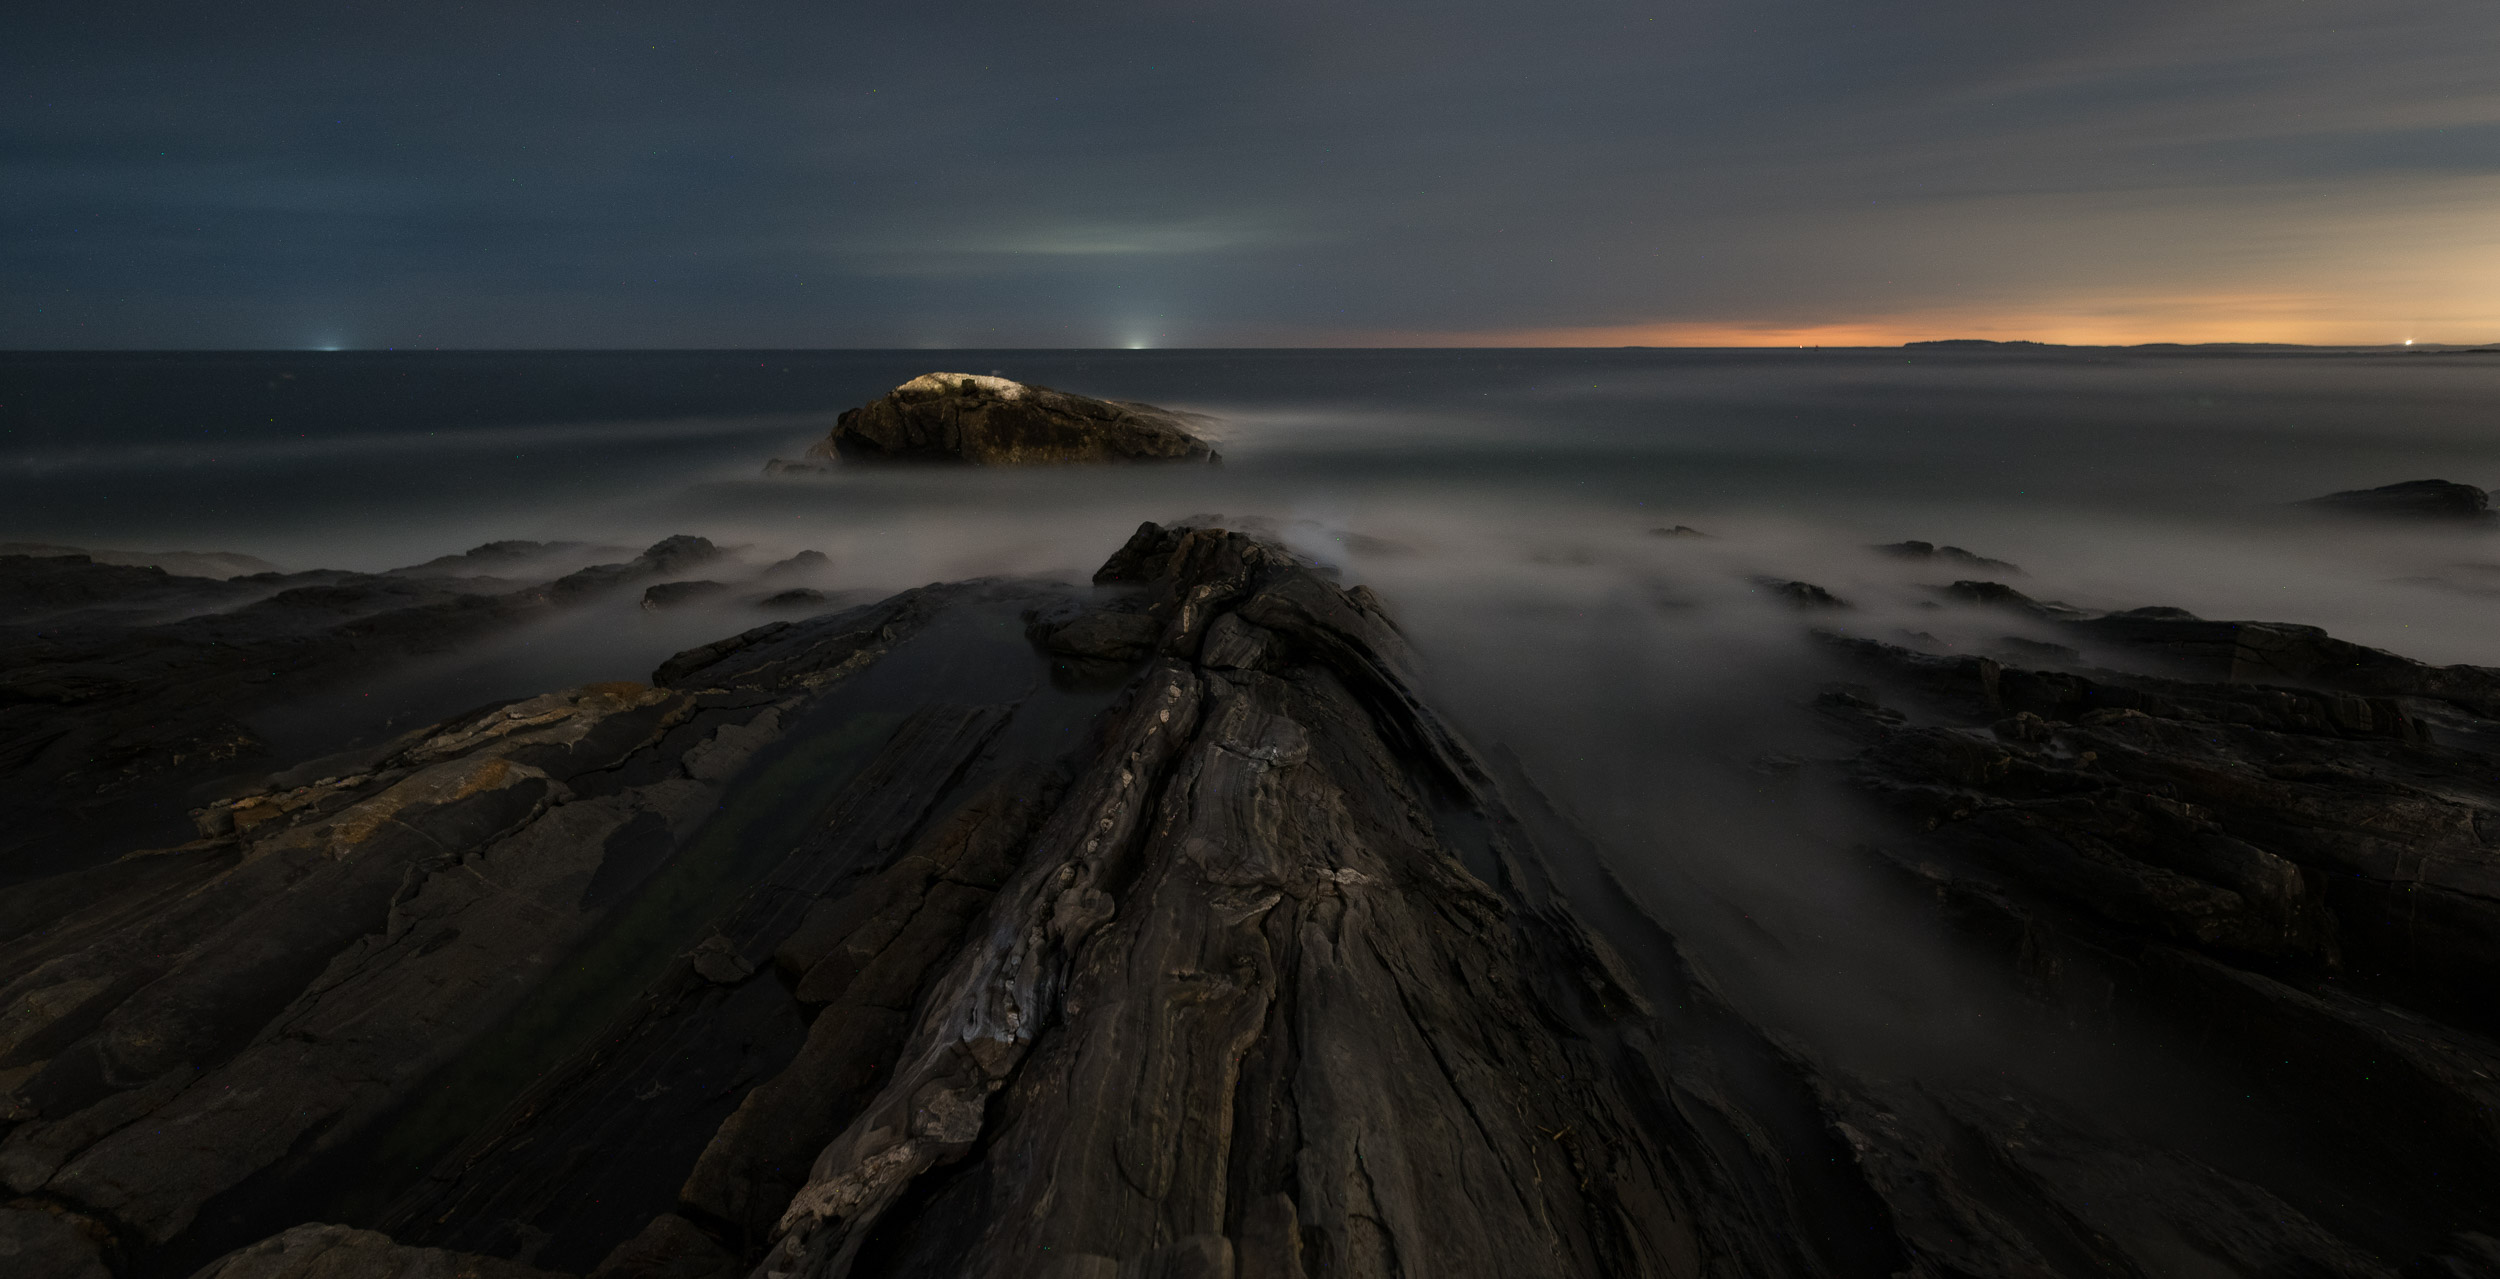 Pemaquid Point, Maine, sharp from front to back after focusing to a hyperfocal distance of 18 feet.  Nikon D750 , Sigma 24mm f/4 lens. 488 seconds, f/3.5, ISO 800.